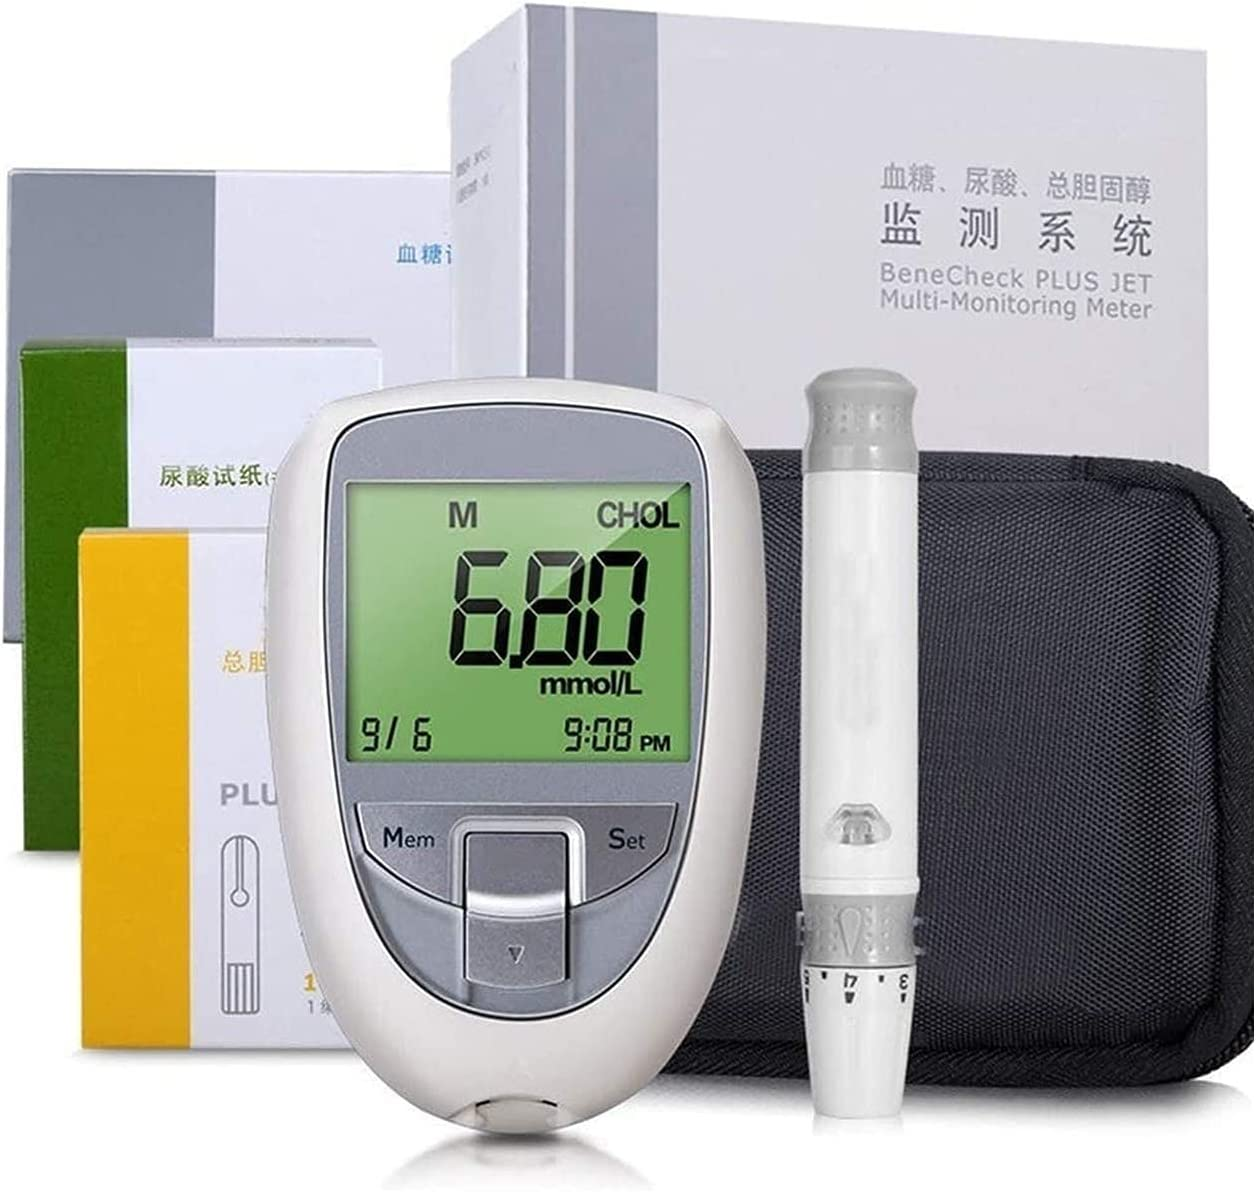 HTTDD 3 Directly managed store in 1 Blood Glucose uric Aci Meter Bargain sale Multifunctional 3-in-1